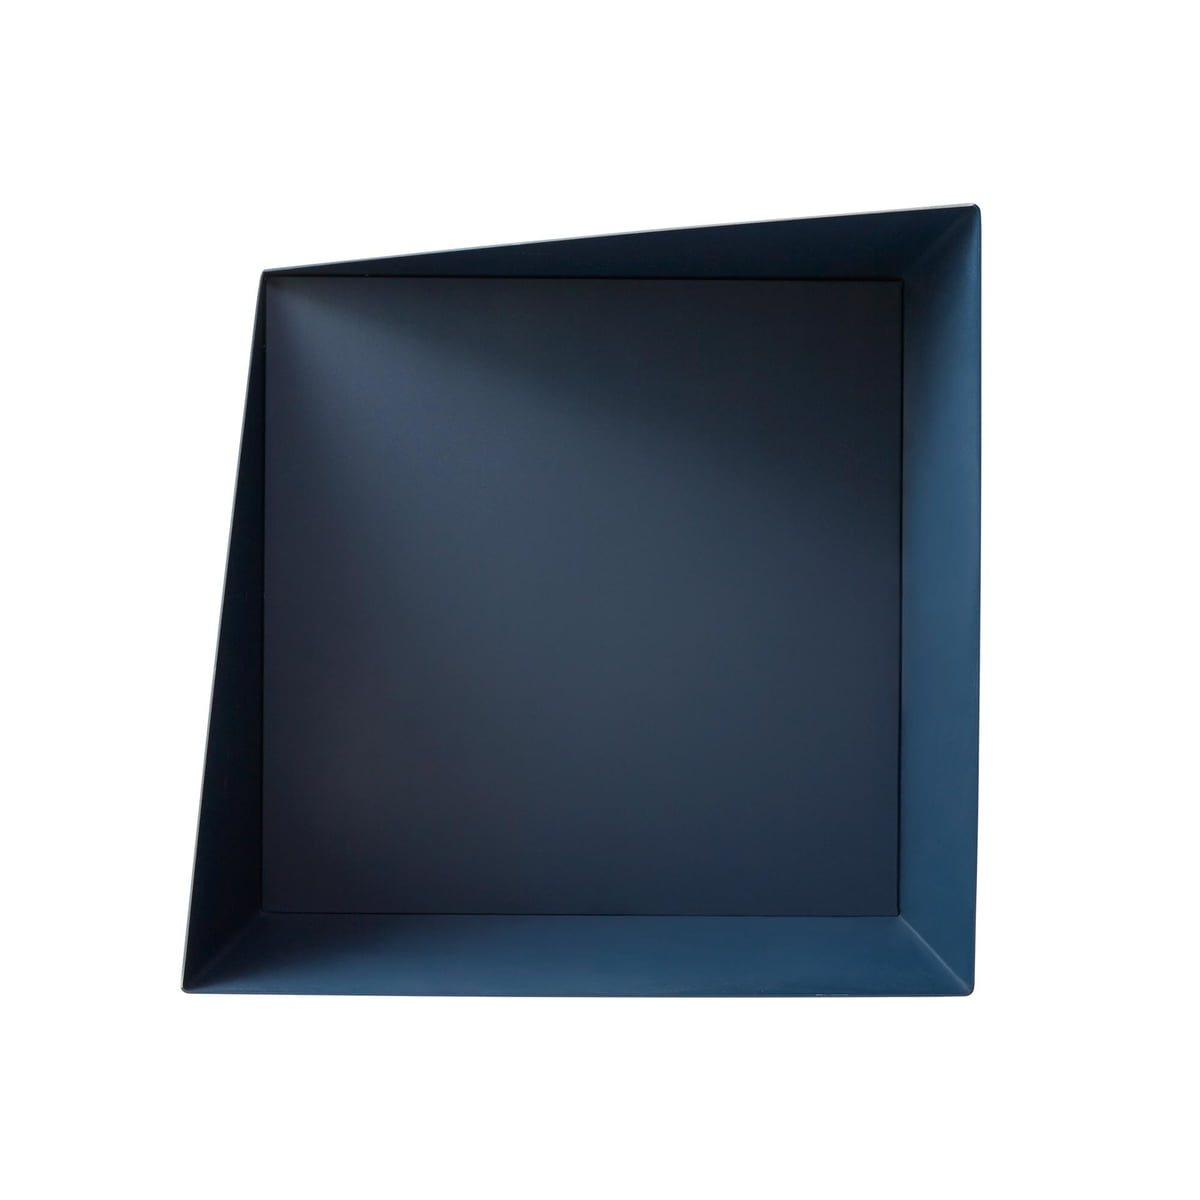 Please wait to be seated - Wall Box Regalsystem, navy blue | Wohnzimmer > Regale > Regalsysteme | Please wait to be seated